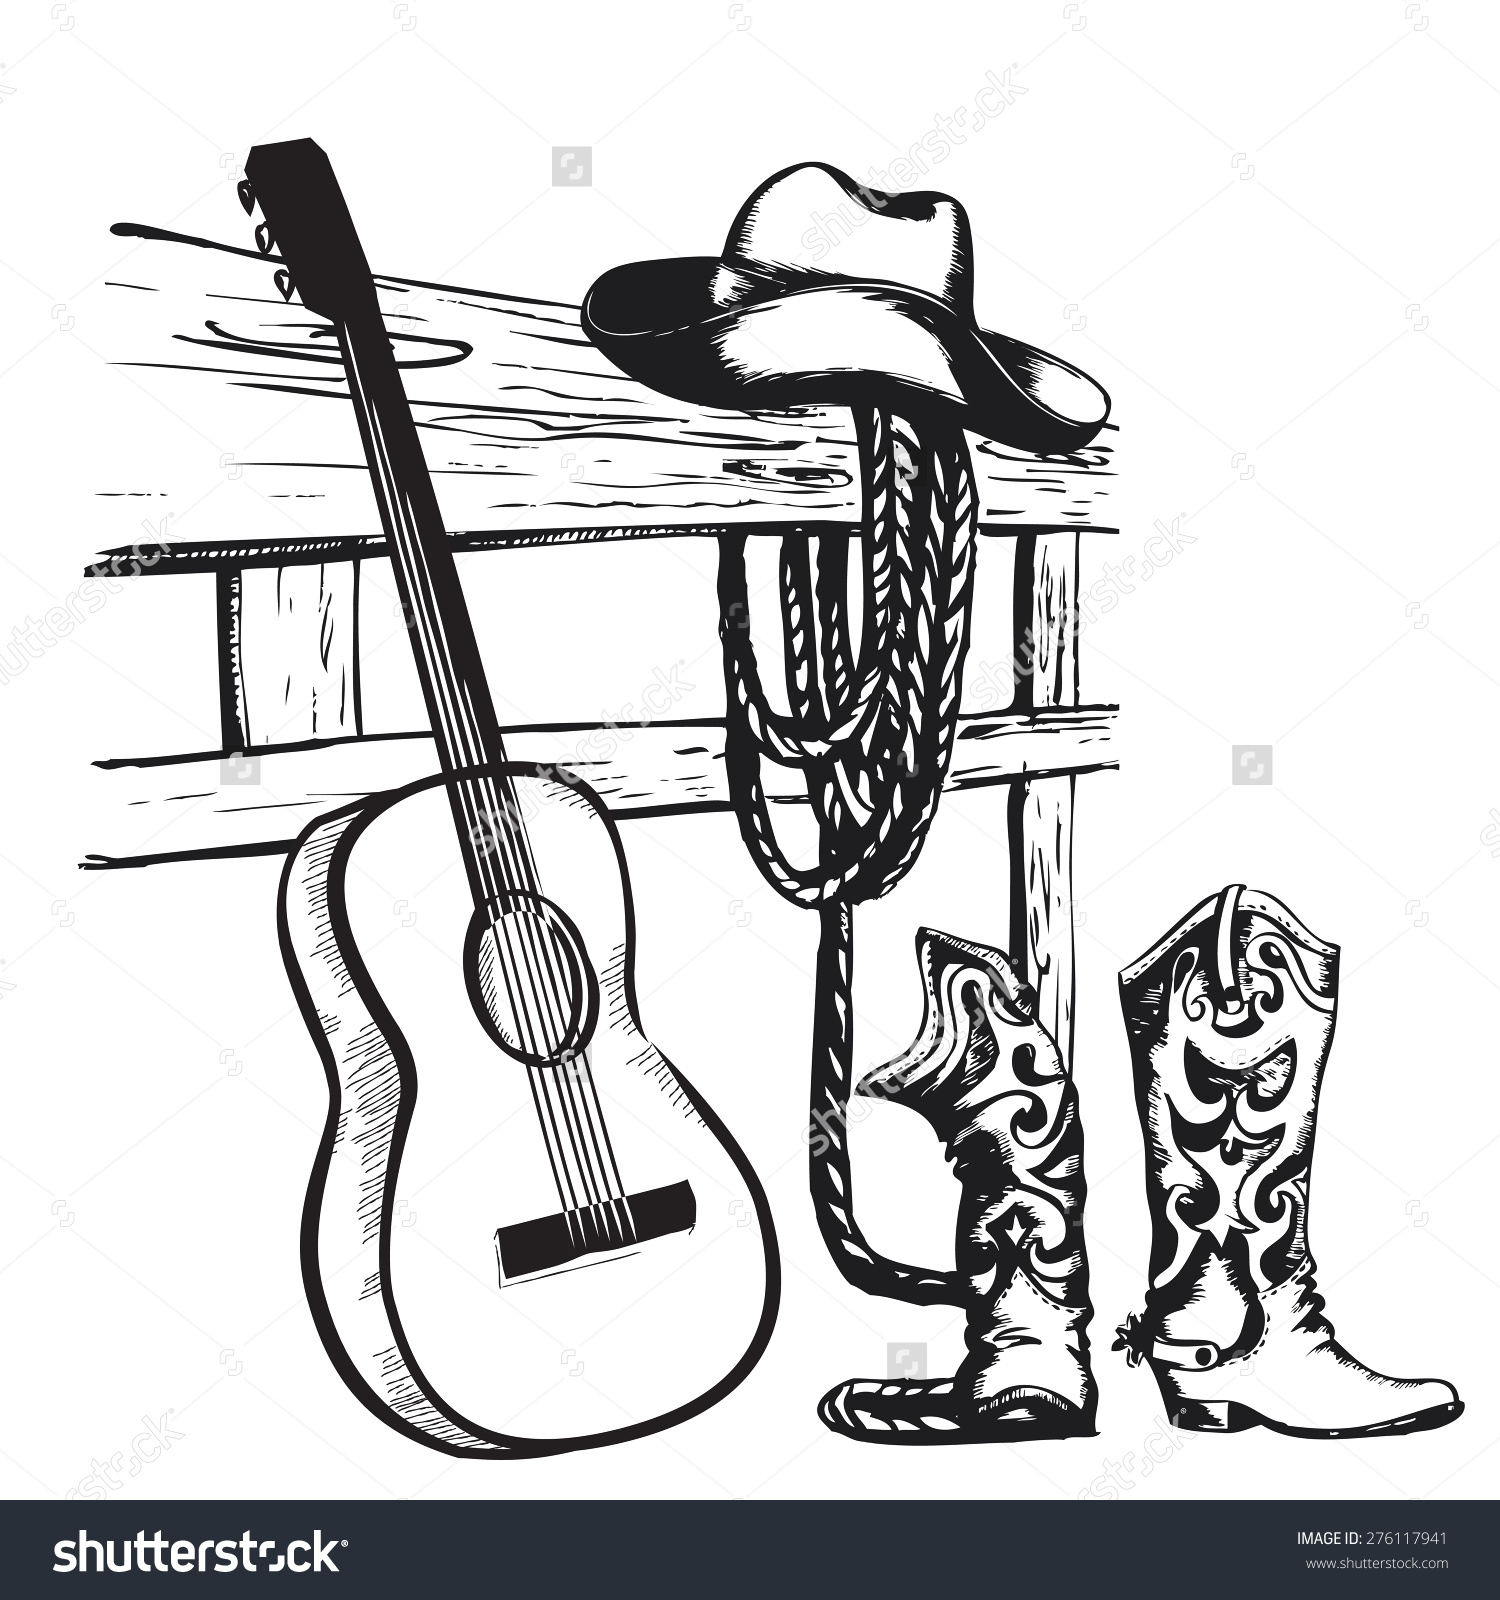 Country music clipart - Clipground